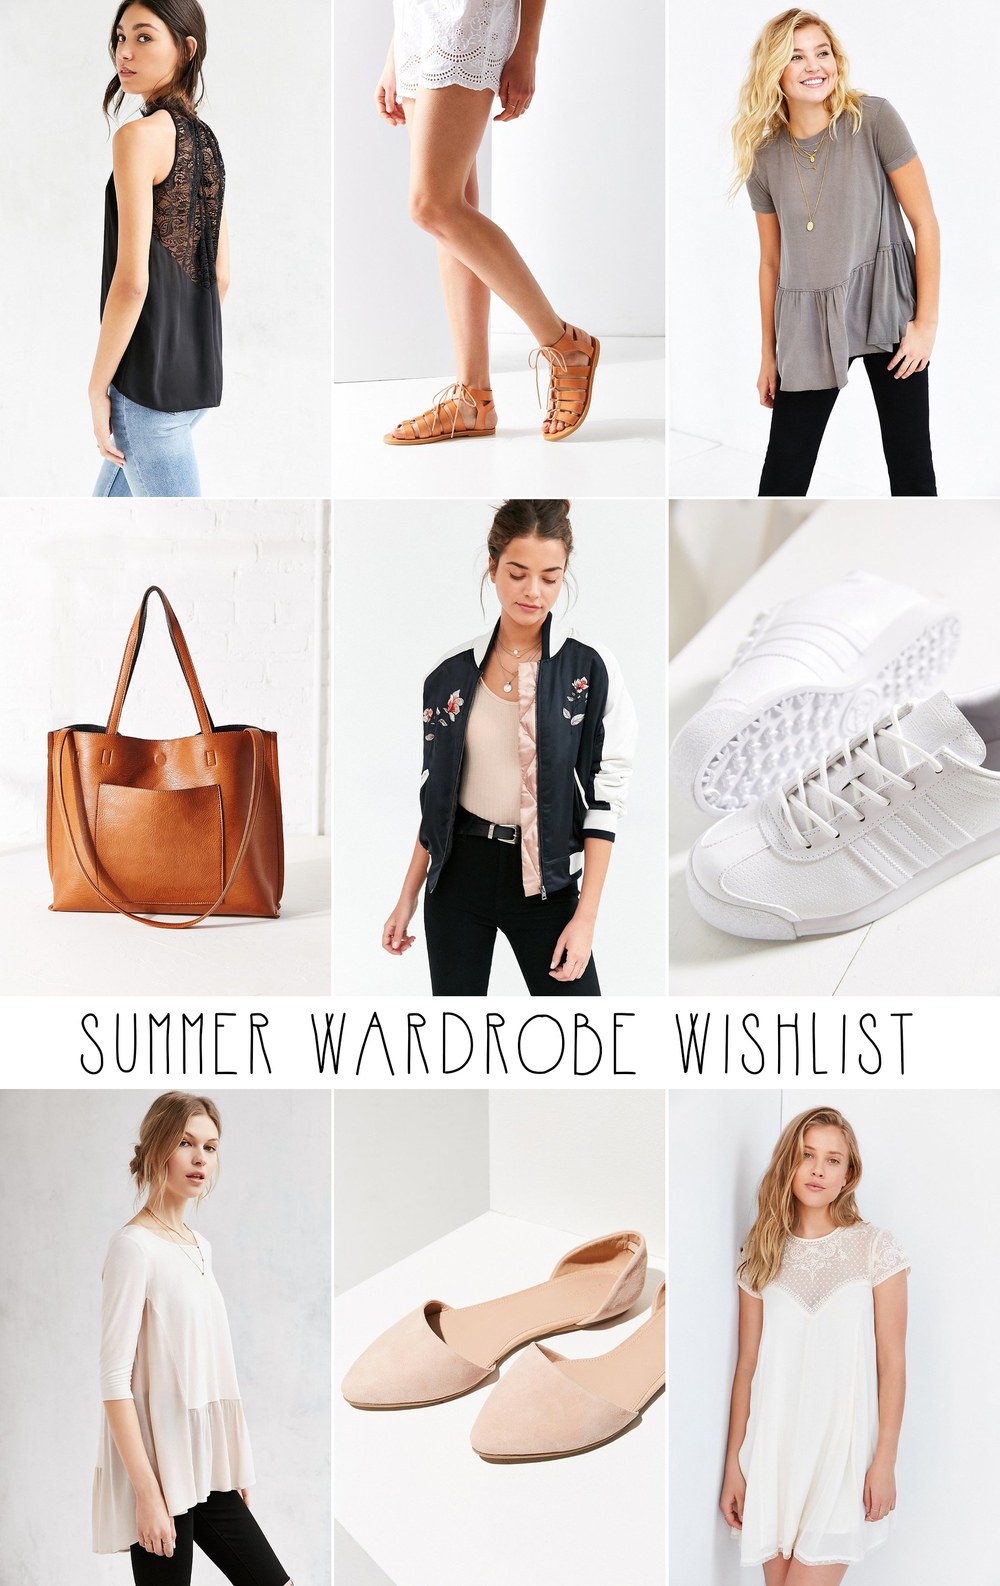 Summer Wardrobe Wish List - Lily The Wandering Gypsy